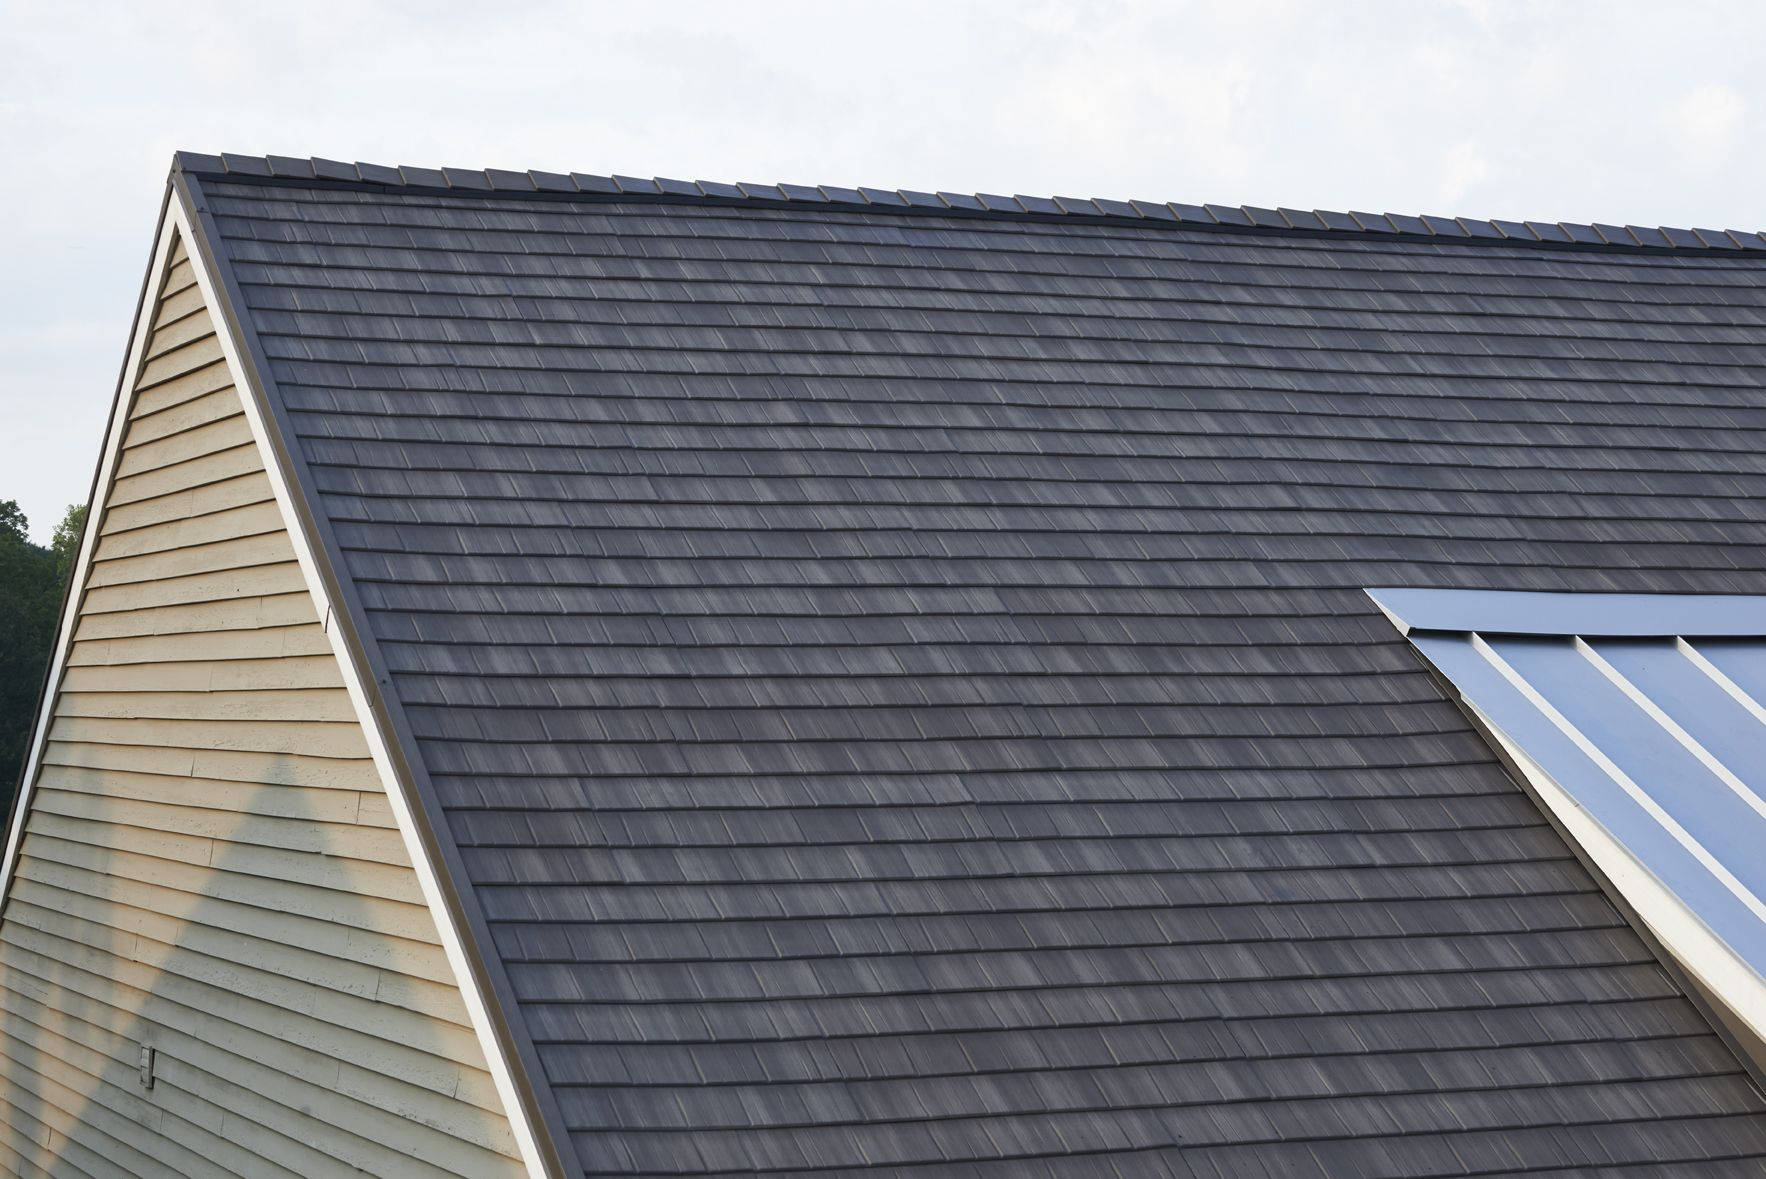 Roofing Kalamazoo Roof Repairs Roof Replacement Augusta Richland Mi Roofing Metal Roof Roof Solar Panel